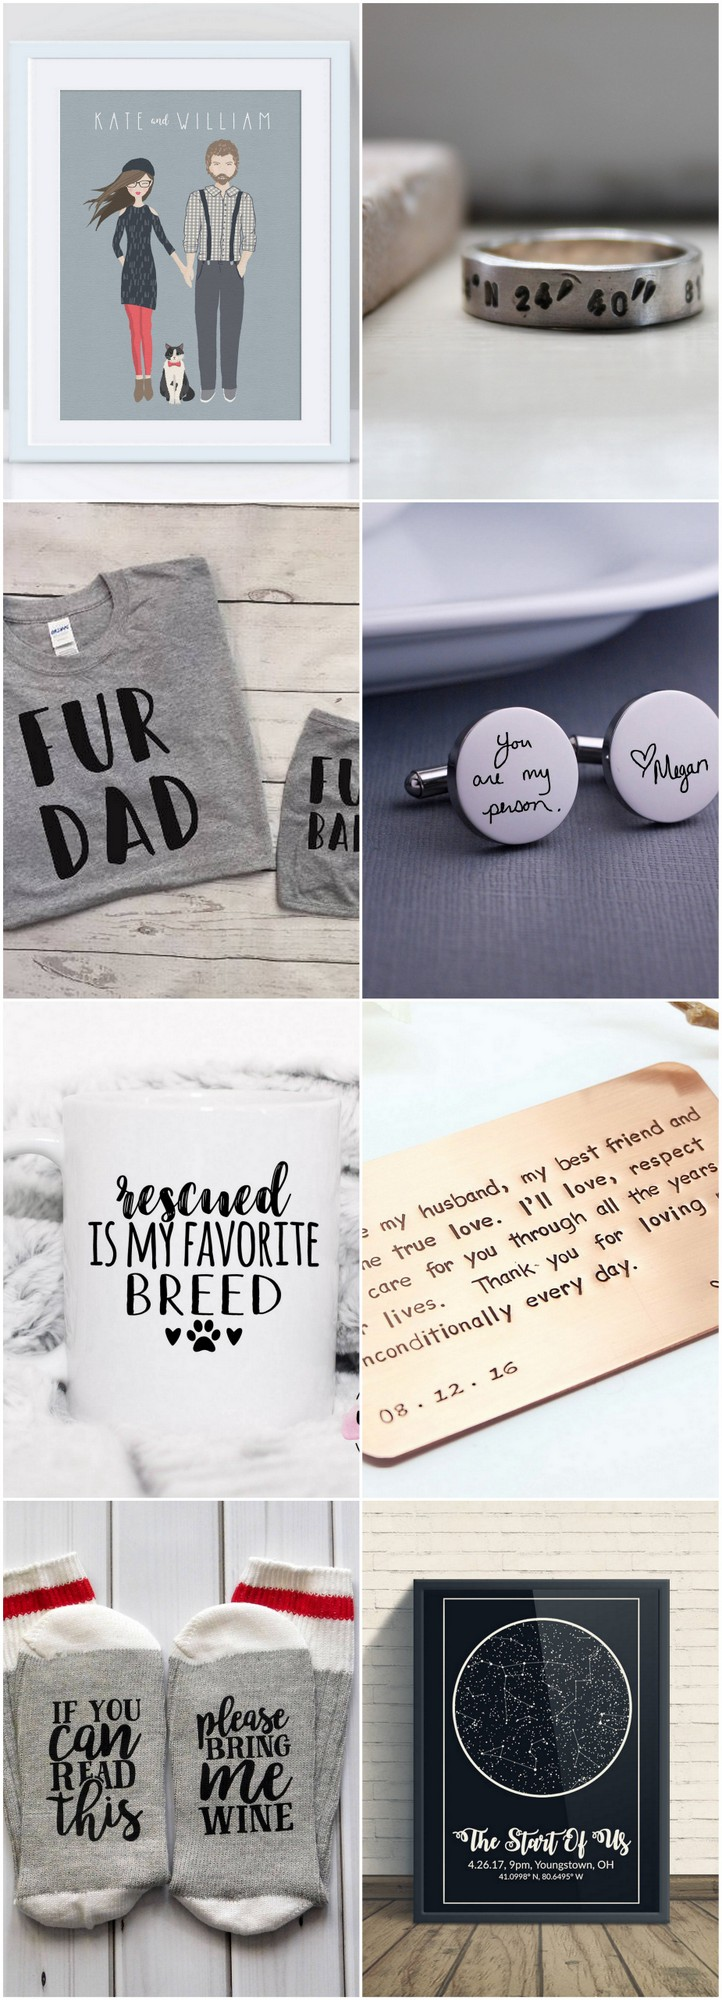 Creative presents for men - fun gifts for men who have everything. See GPS co-ordinate stamped rings, a constellation poster of the sky when you met + more!